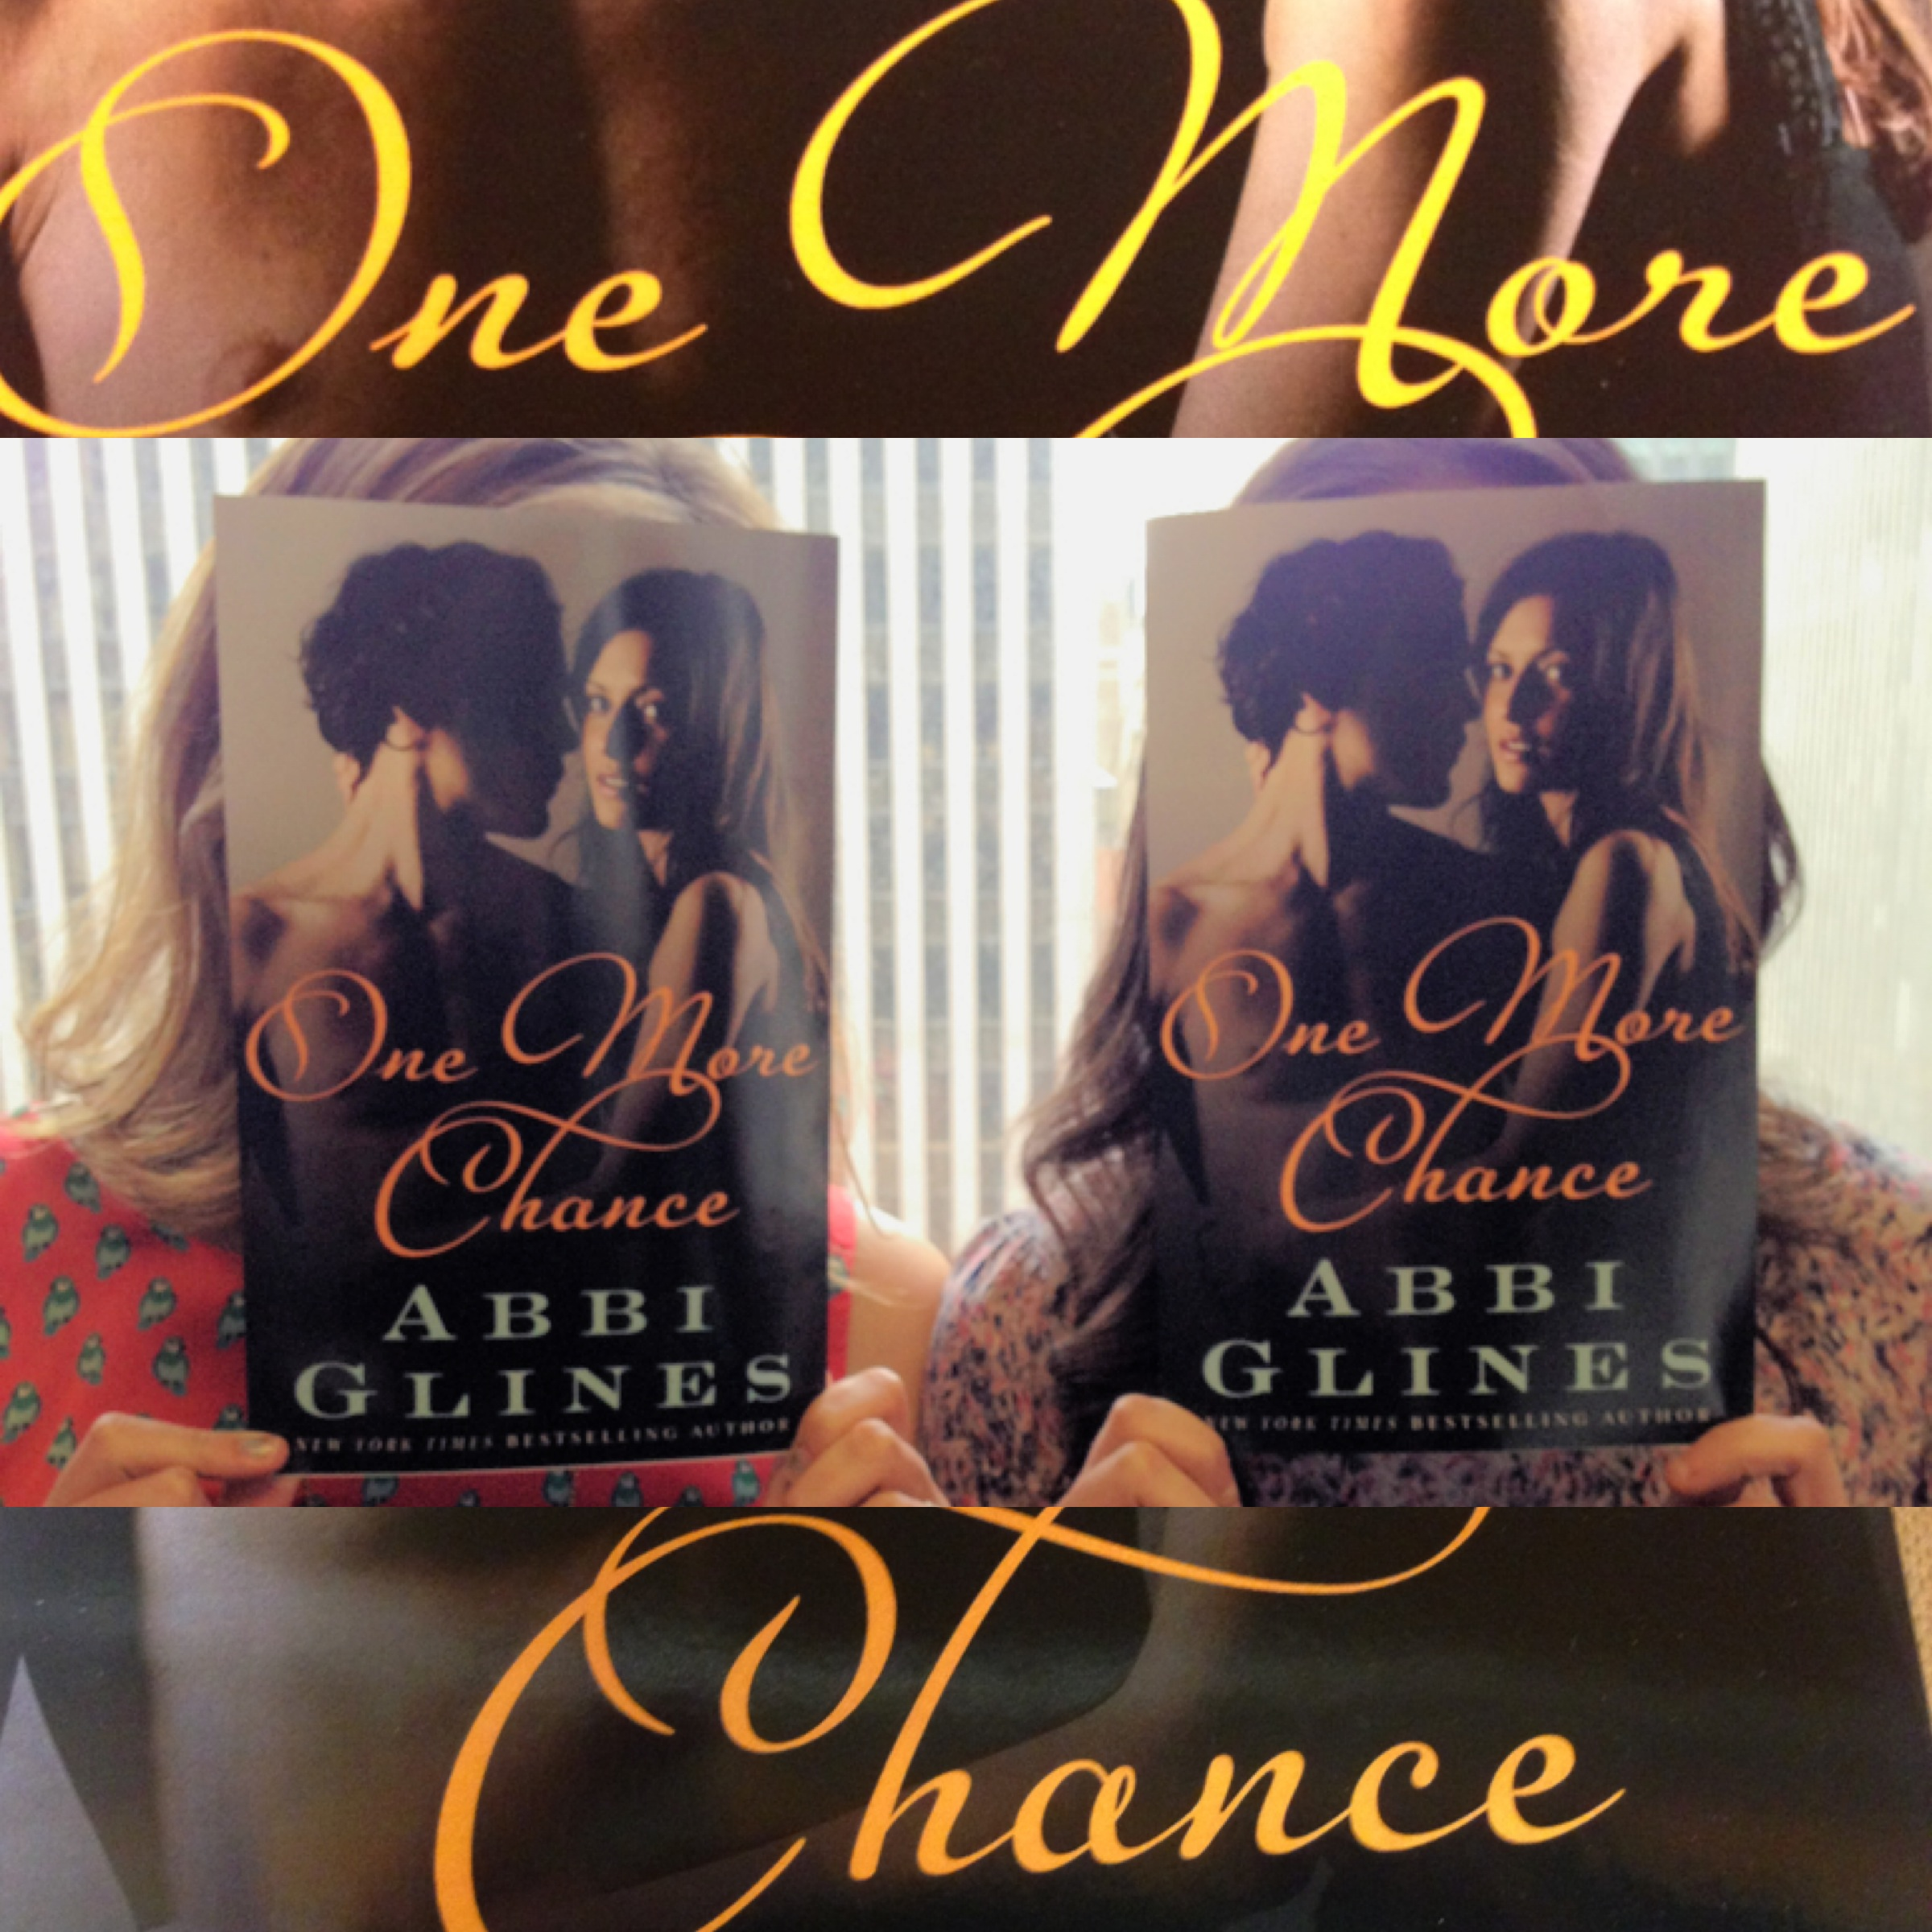 One more chance abbi glines goodreads giveaways